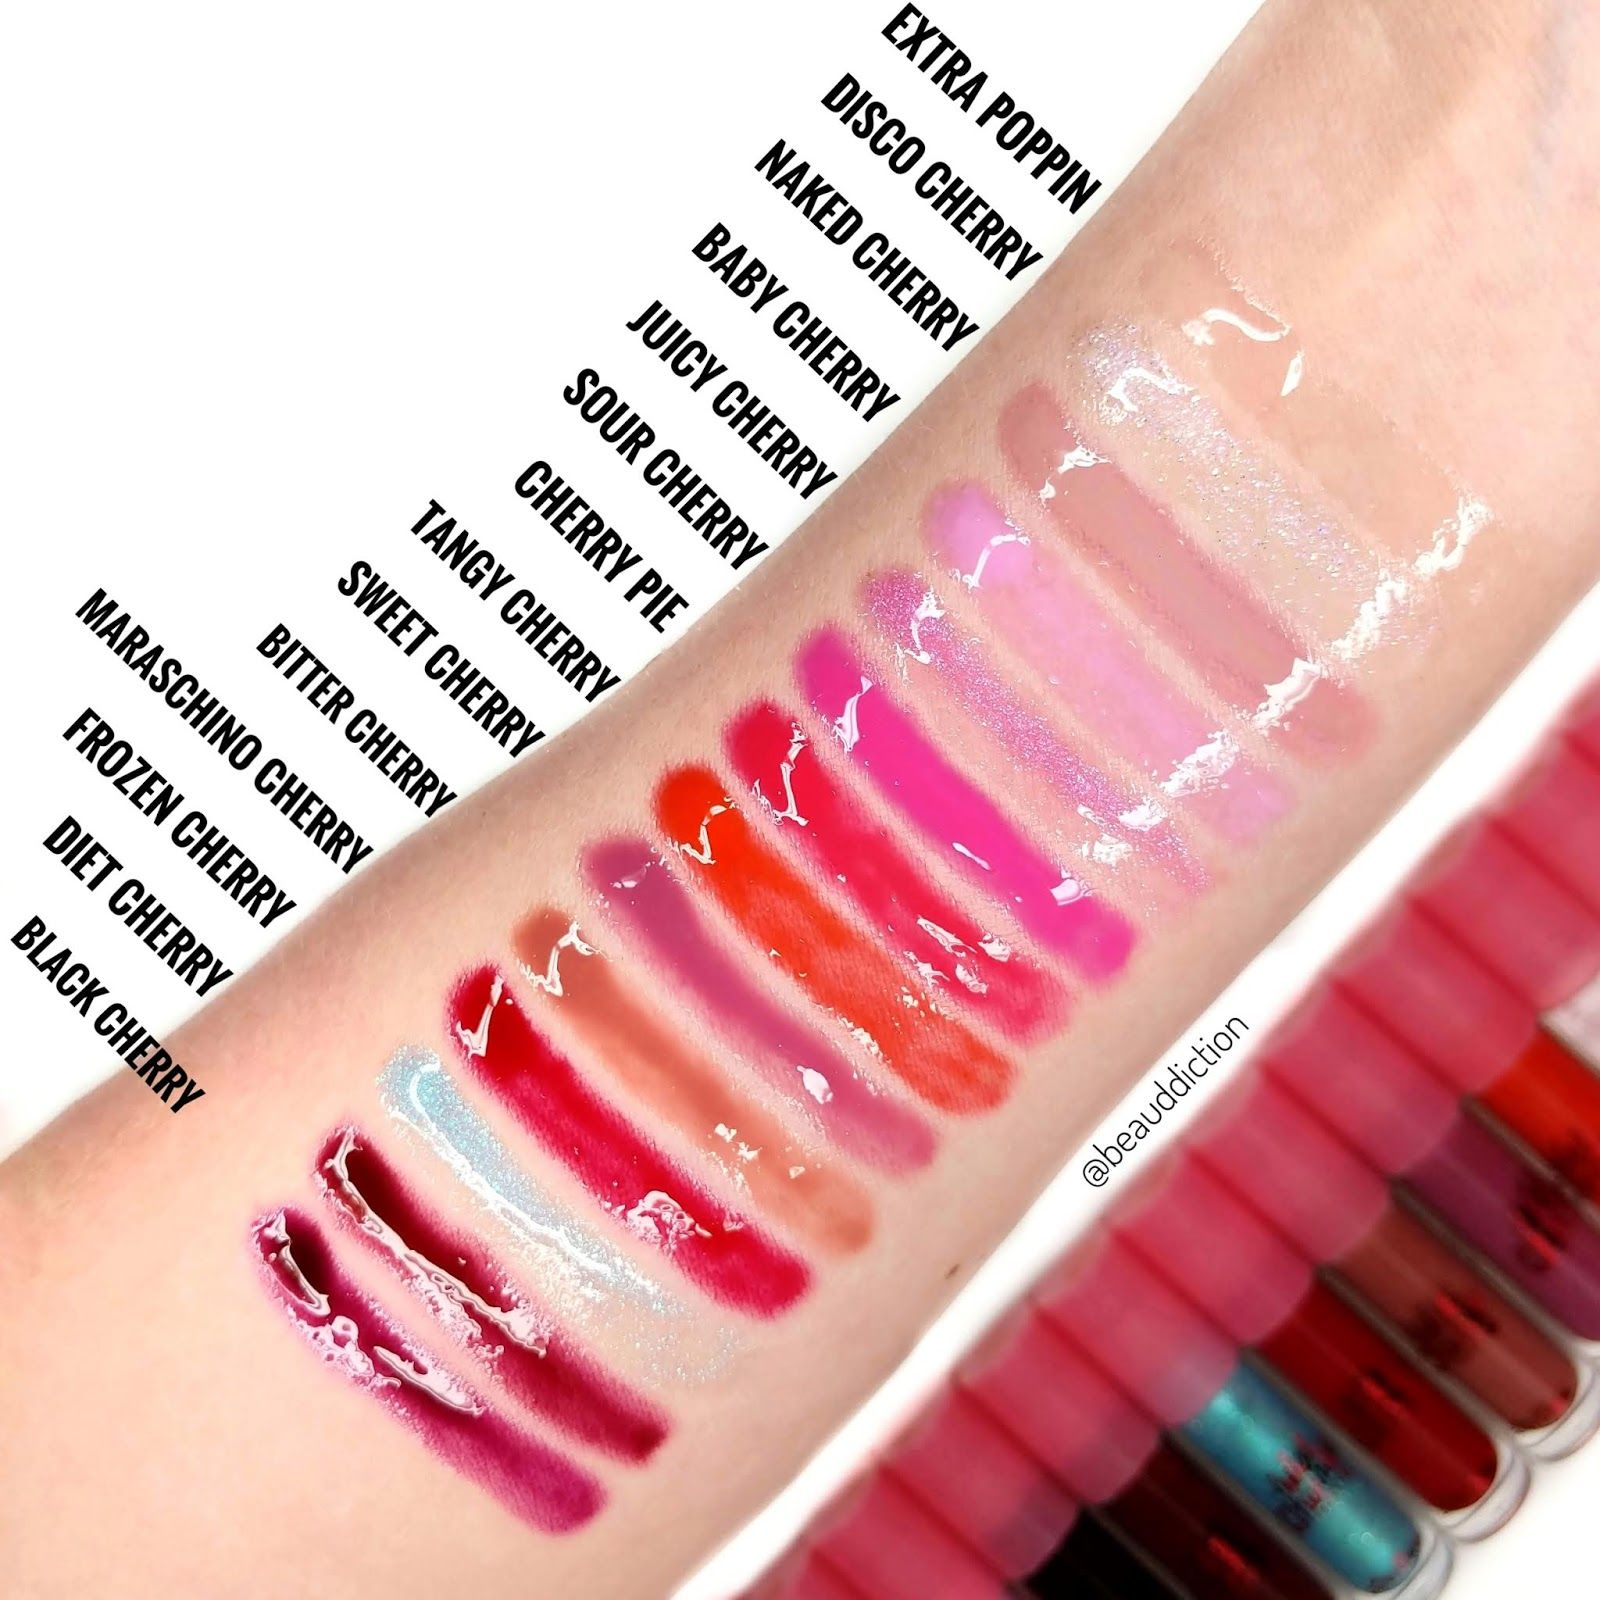 Wet Cherry Lip Gloss by Lime Crime #5